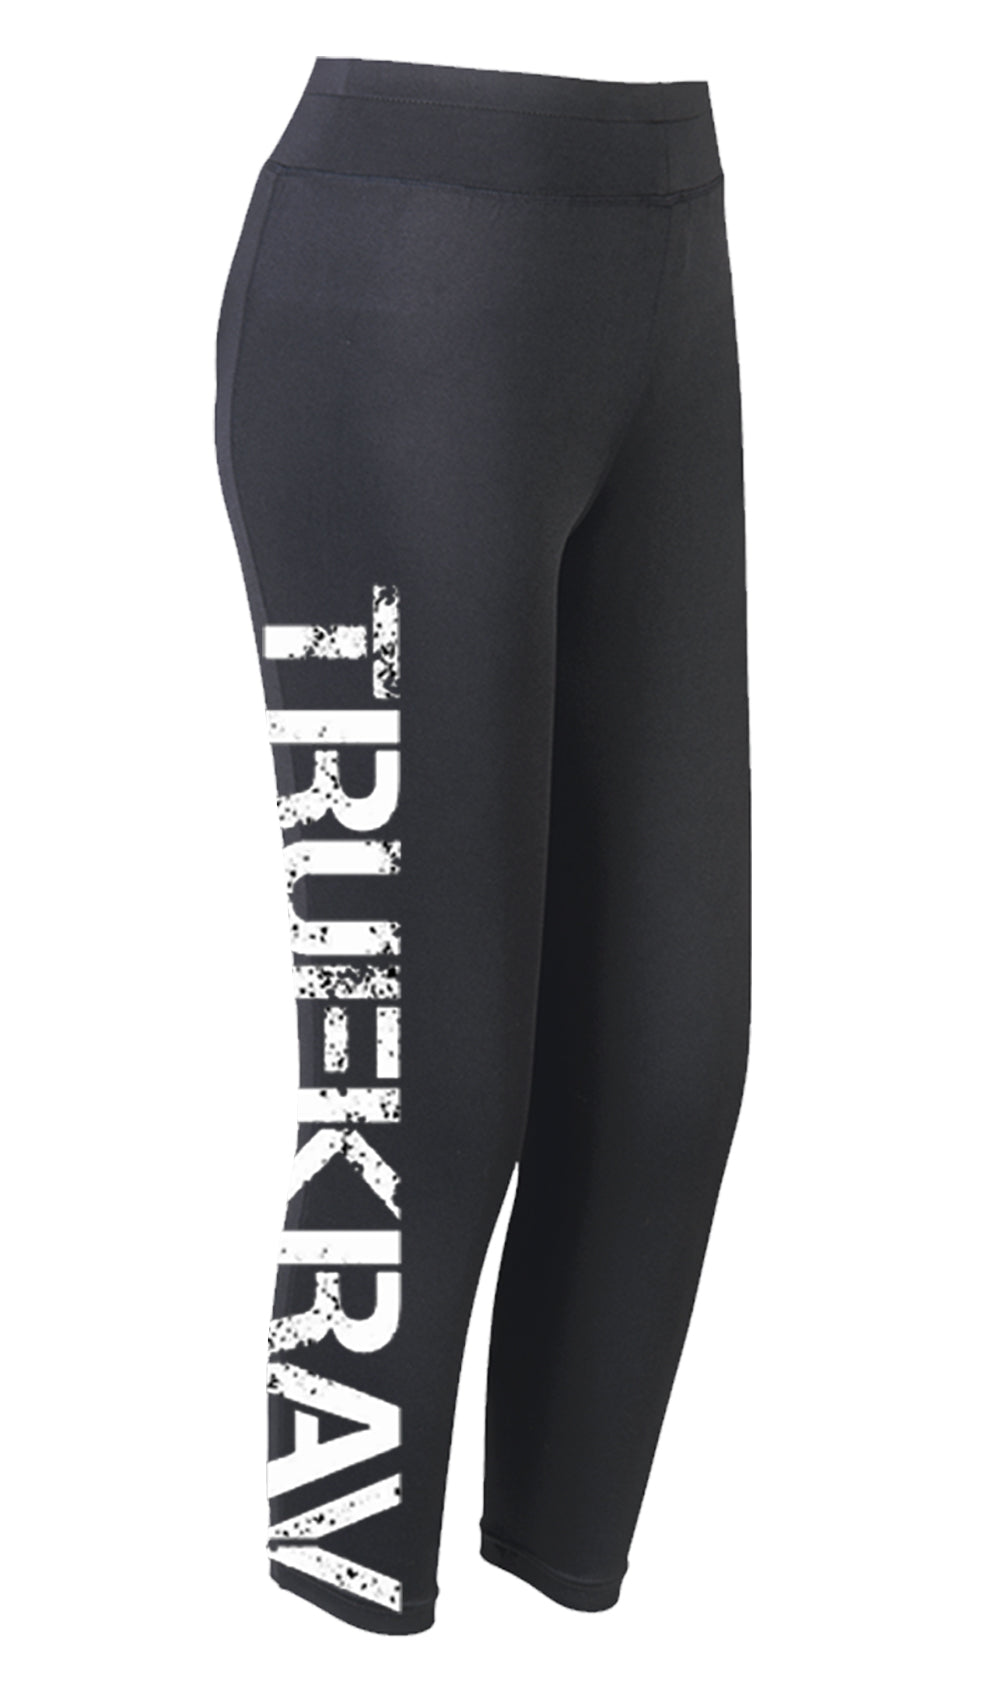 Ellipsis - Truekrav Black Leggings